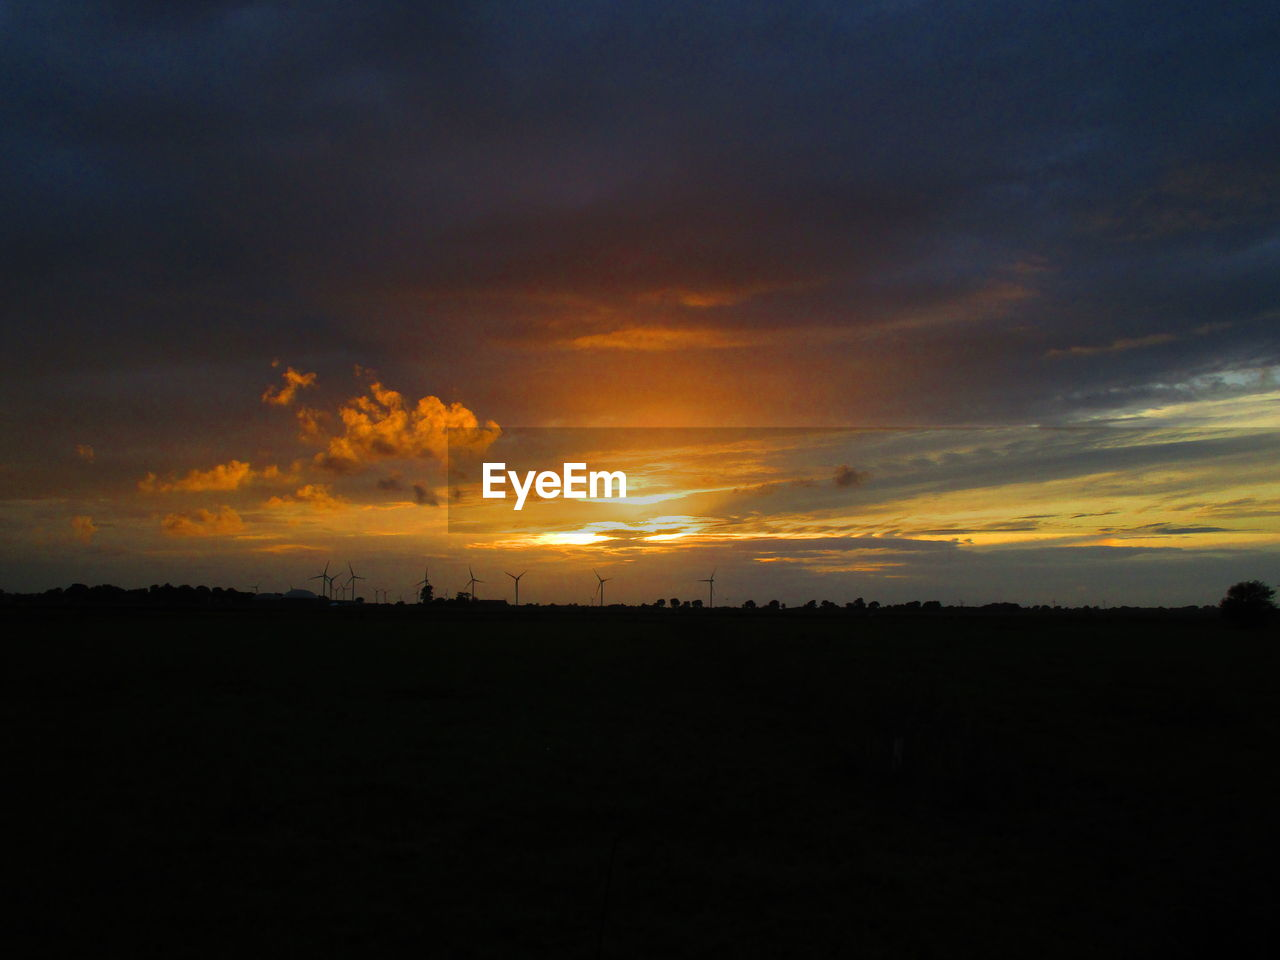 sky, sunset, beauty in nature, scenics - nature, silhouette, tranquil scene, tranquility, cloud - sky, orange color, non-urban scene, landscape, idyllic, environment, nature, no people, outdoors, land, field, copy space, dramatic sky